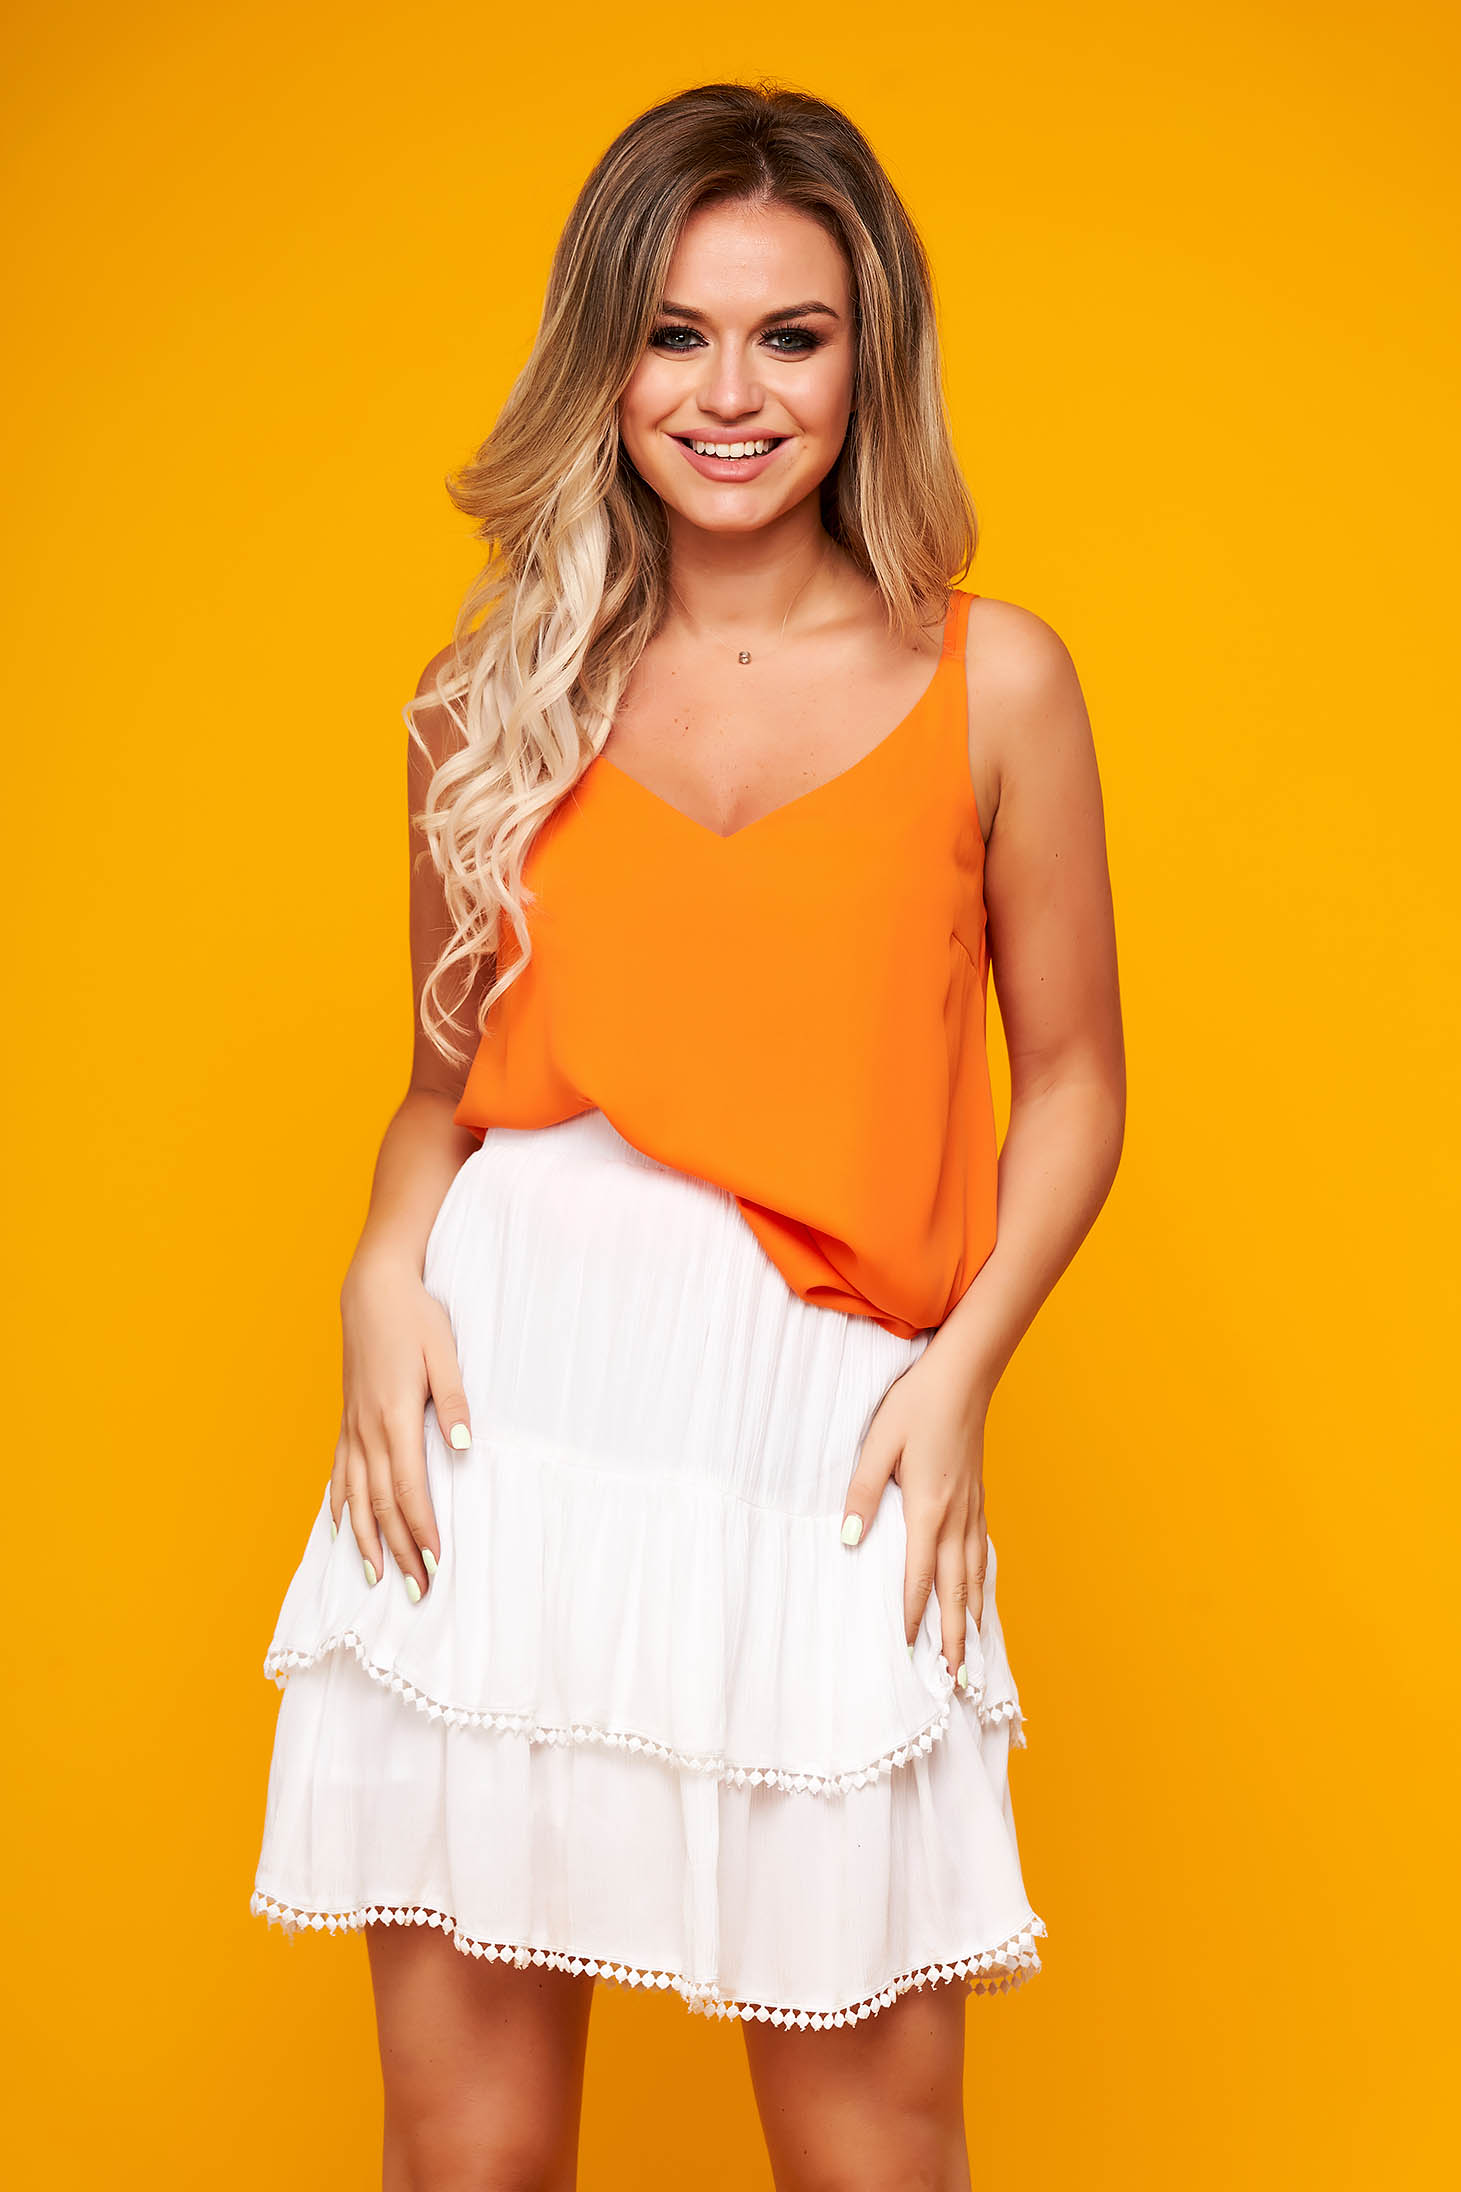 Orange top shirt casual from veil fabric with straps flared